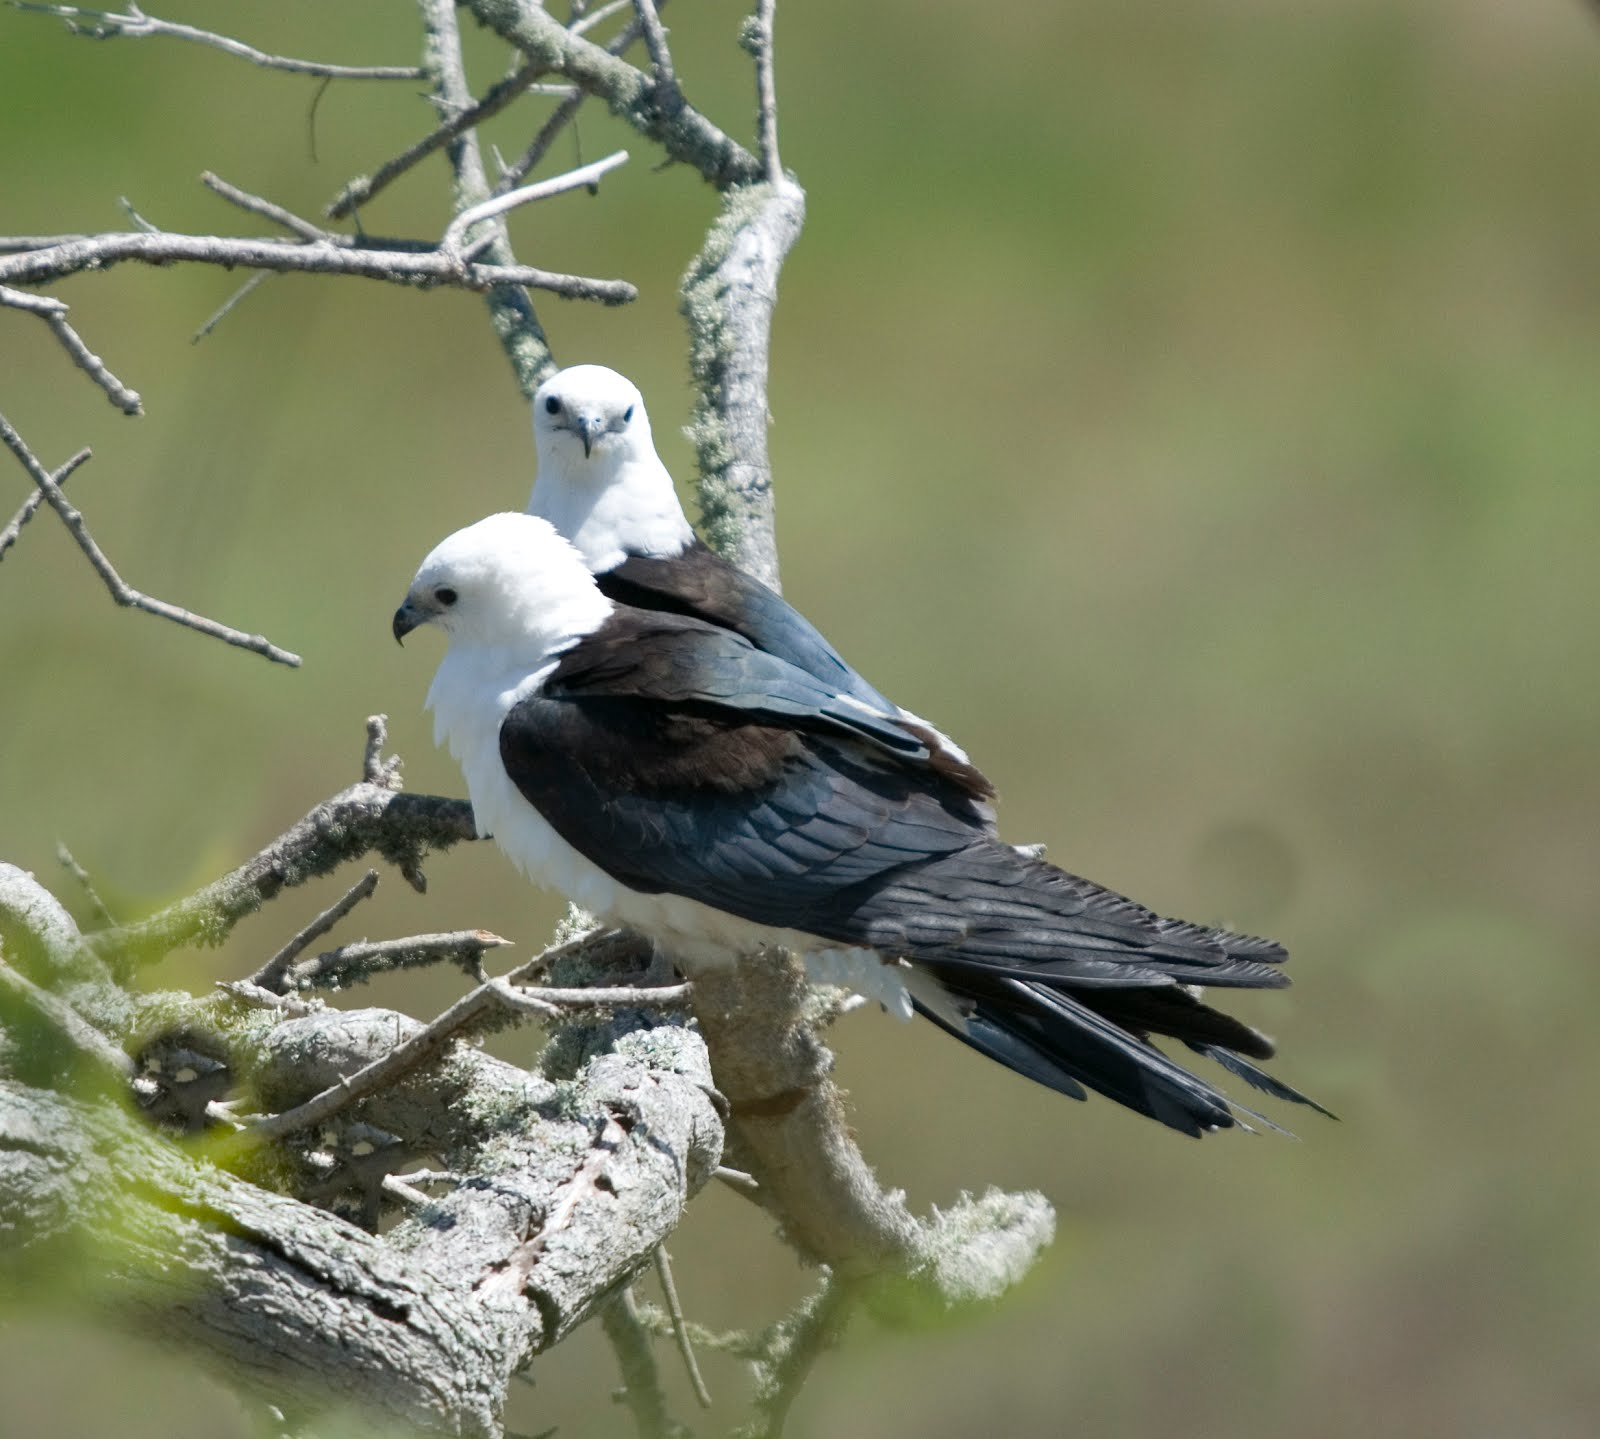 Swallow-tailed Kites from Stevenson Yard, Texas